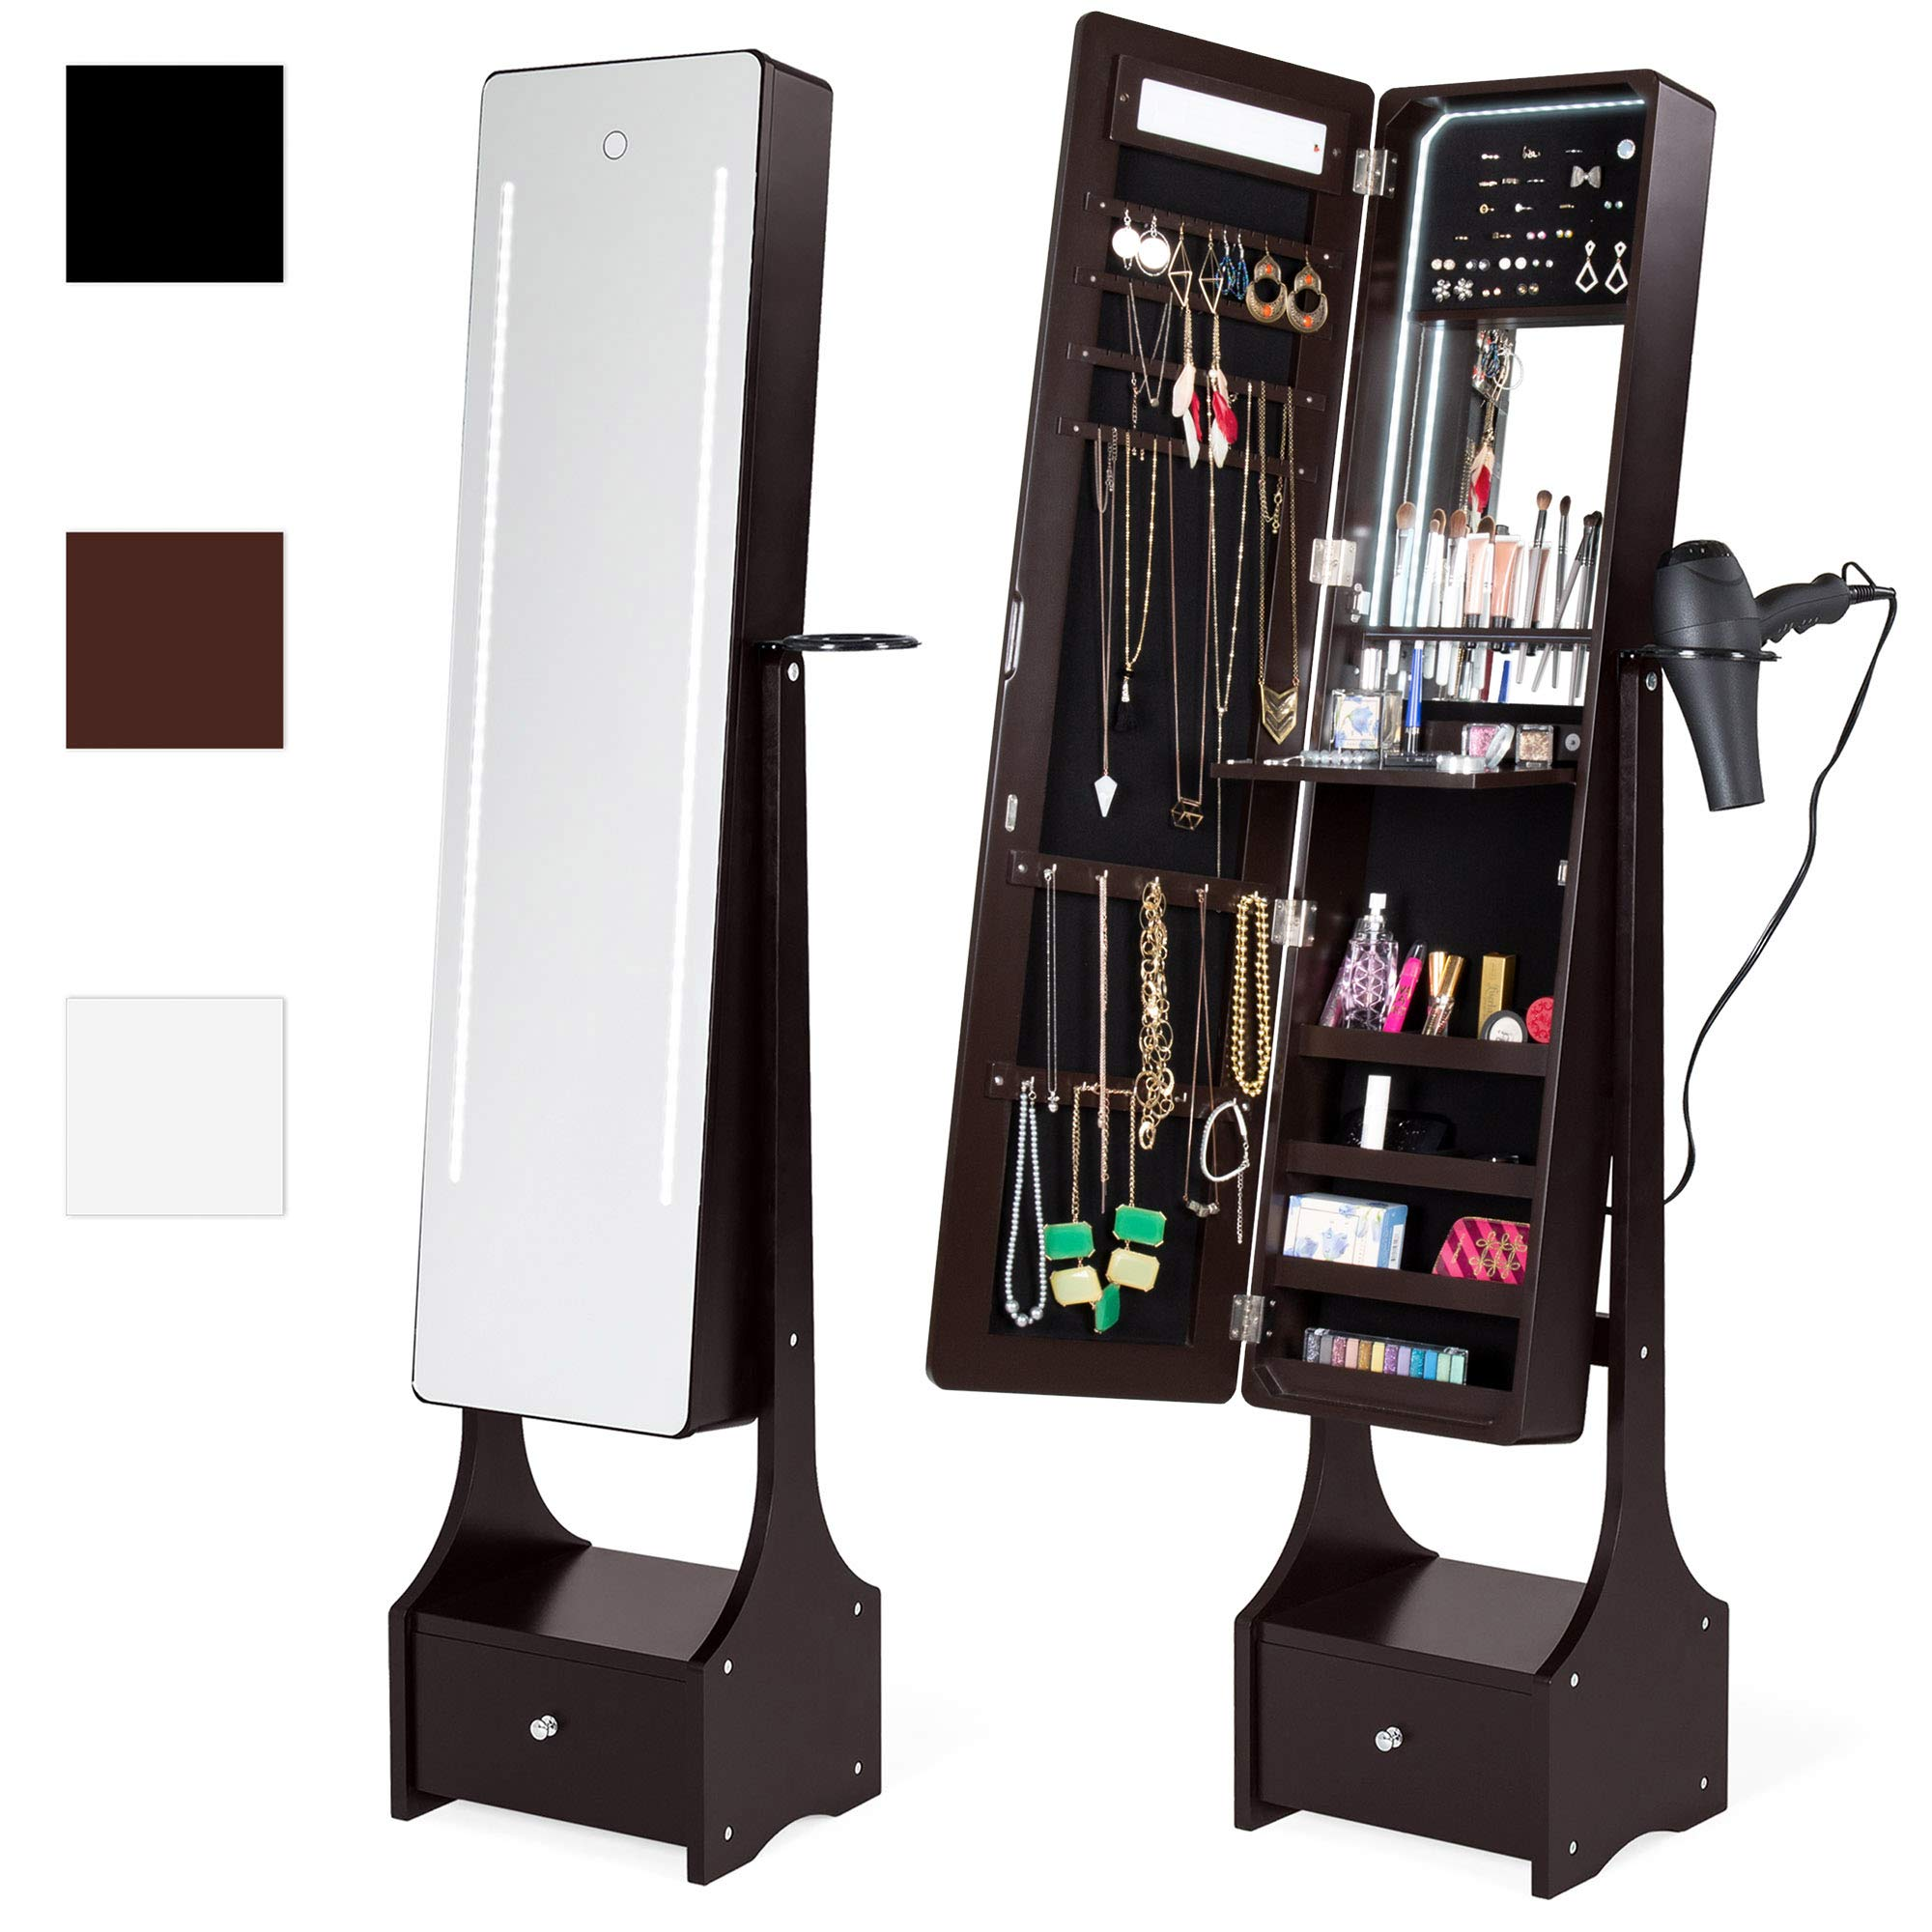 Best Choice Products Full Length LED Mirrored Jewelry Storage Organizer Cabinet w/Interior & Exterior Lights - Brown by Best Choice Products